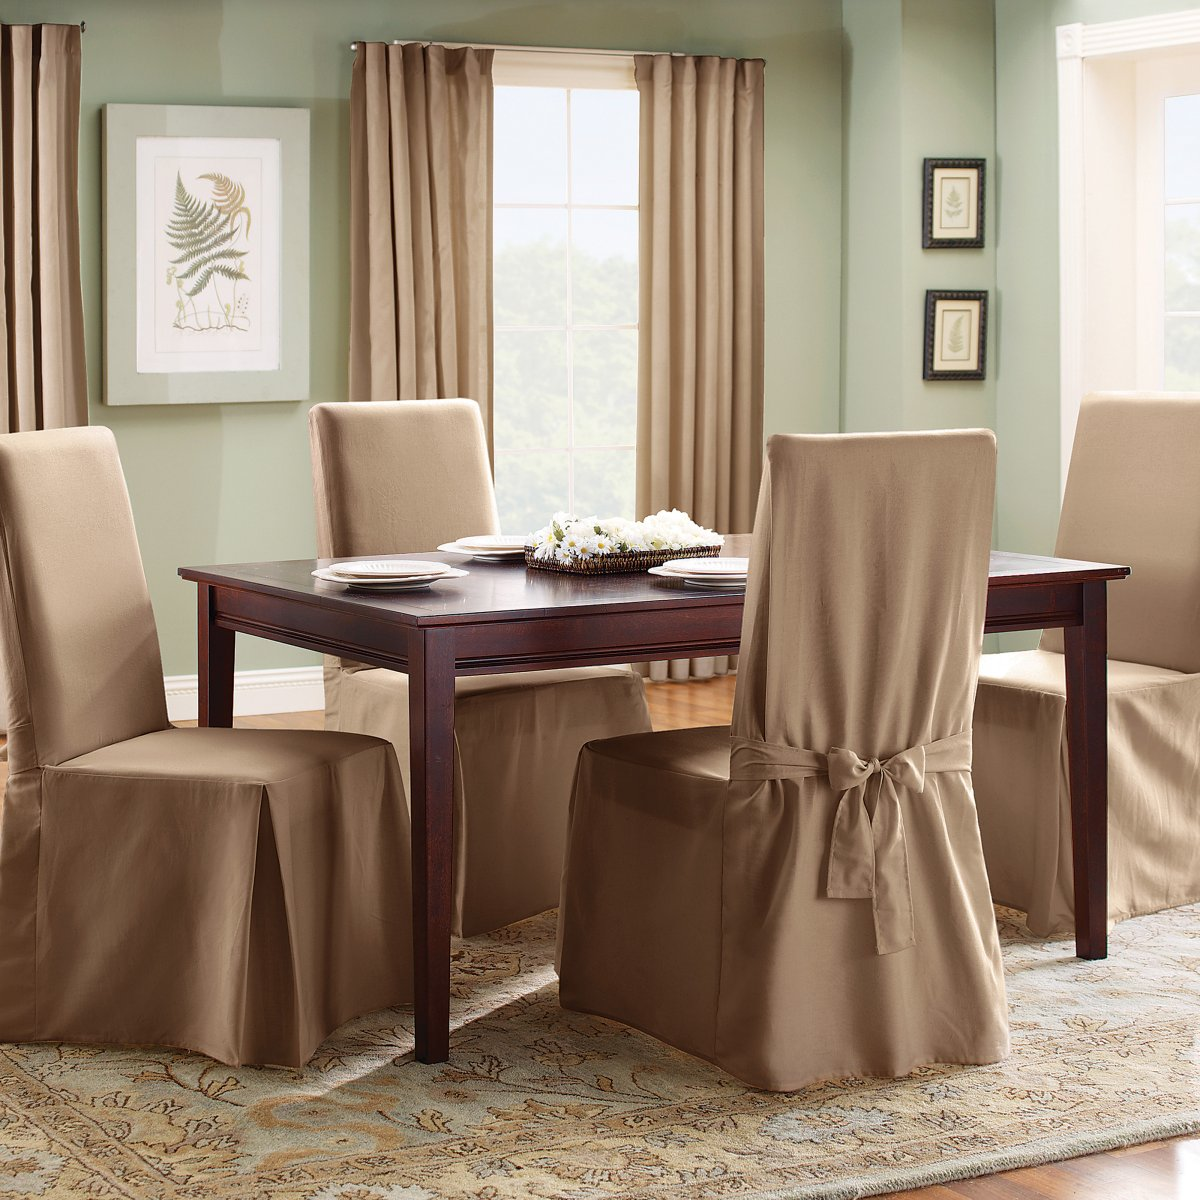 Dining Chair Slipcovers Dining room